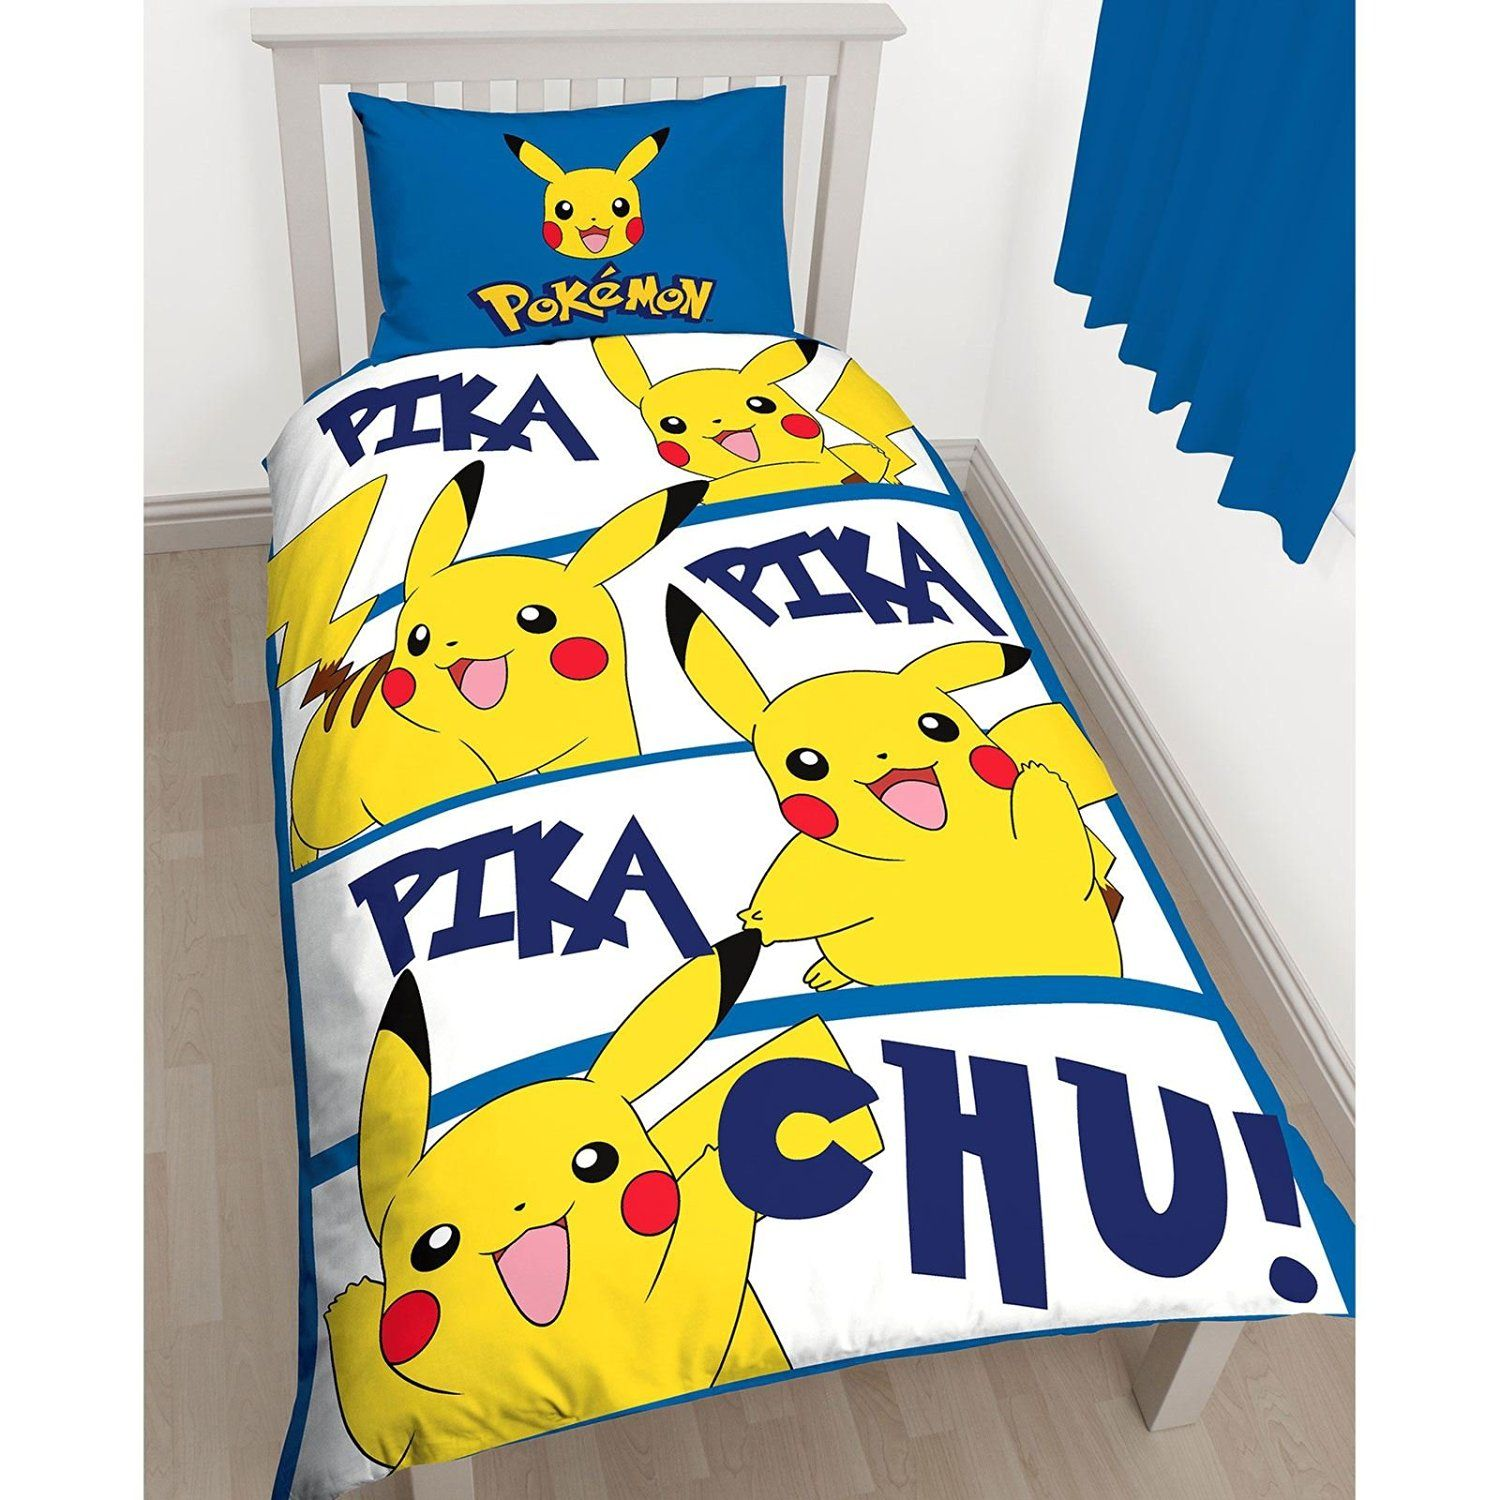 Pokemon Pikachu Action Single Duvet Cover Set Inc Pillowcase Amazoncouk